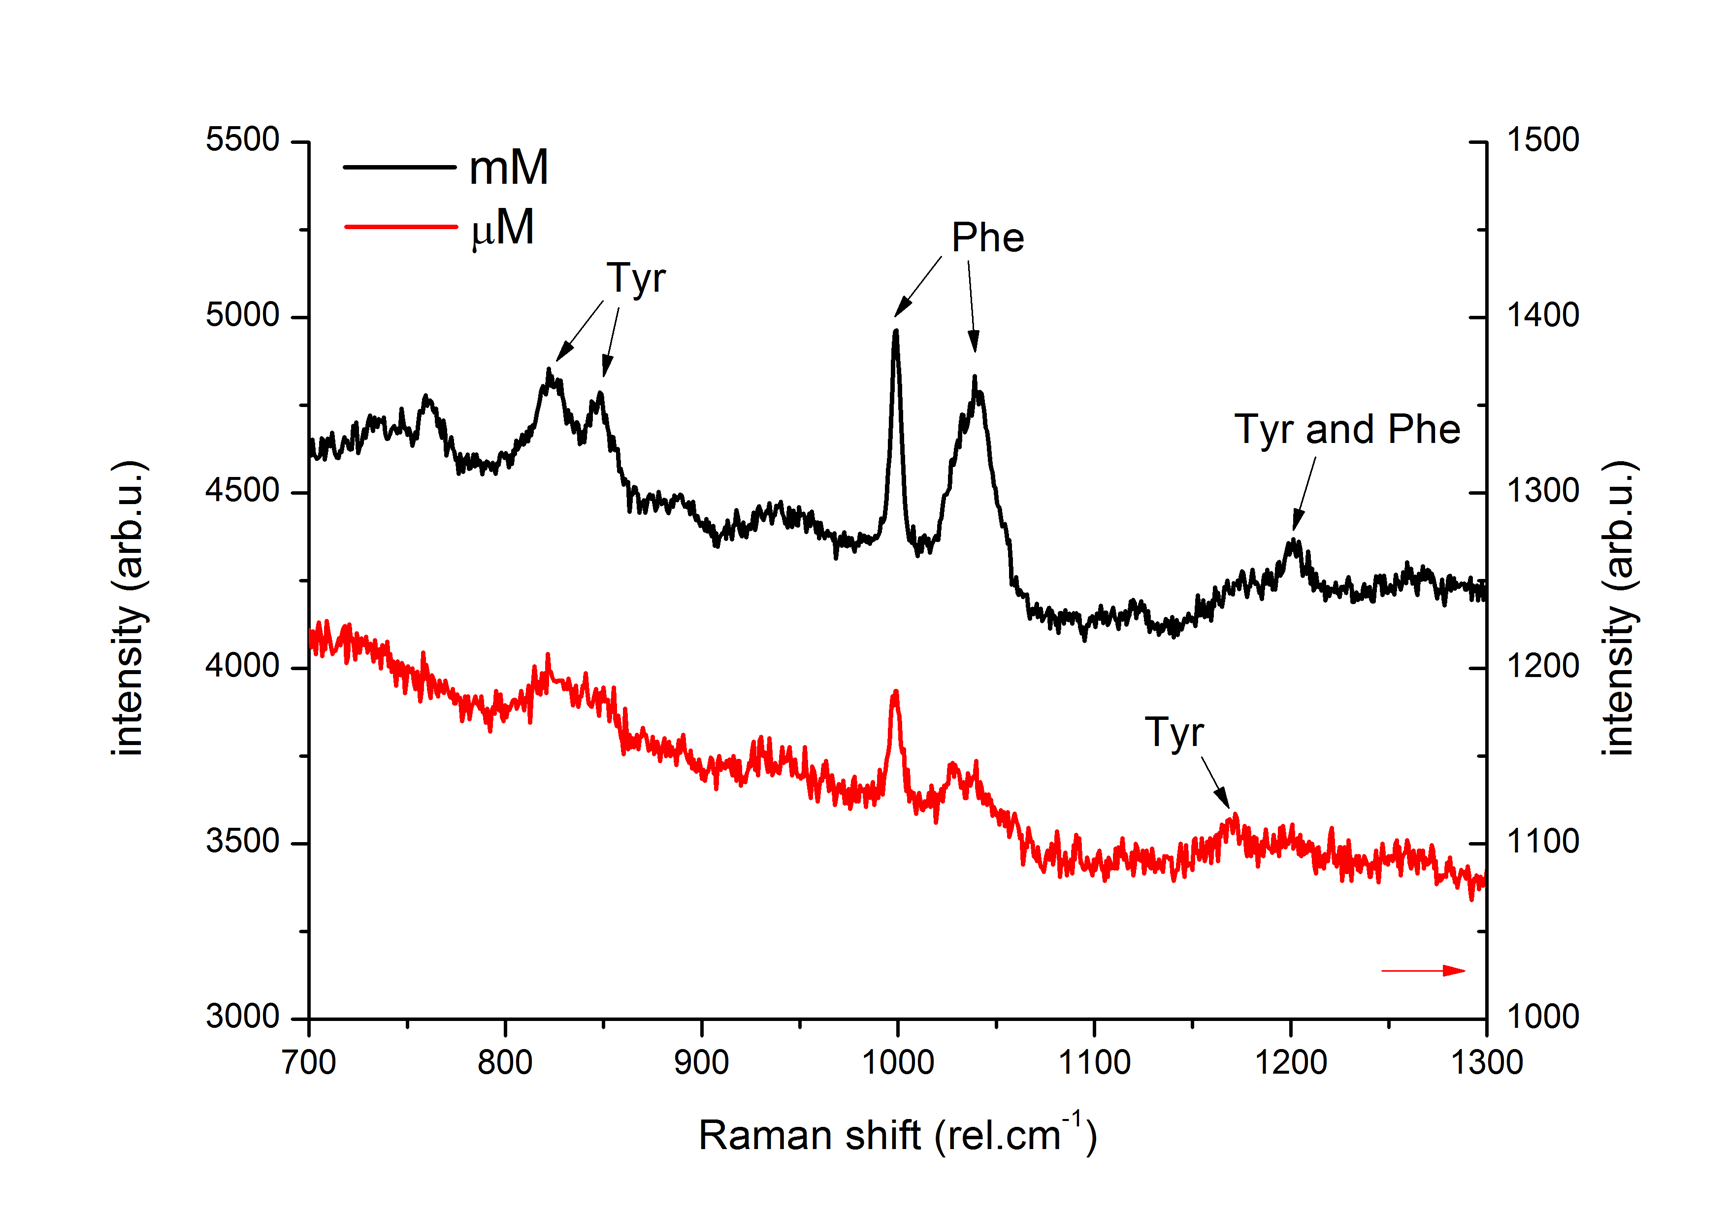 SERS spectra of Insulin on Premium-Silver obtained by Dr. Adriana Annušová